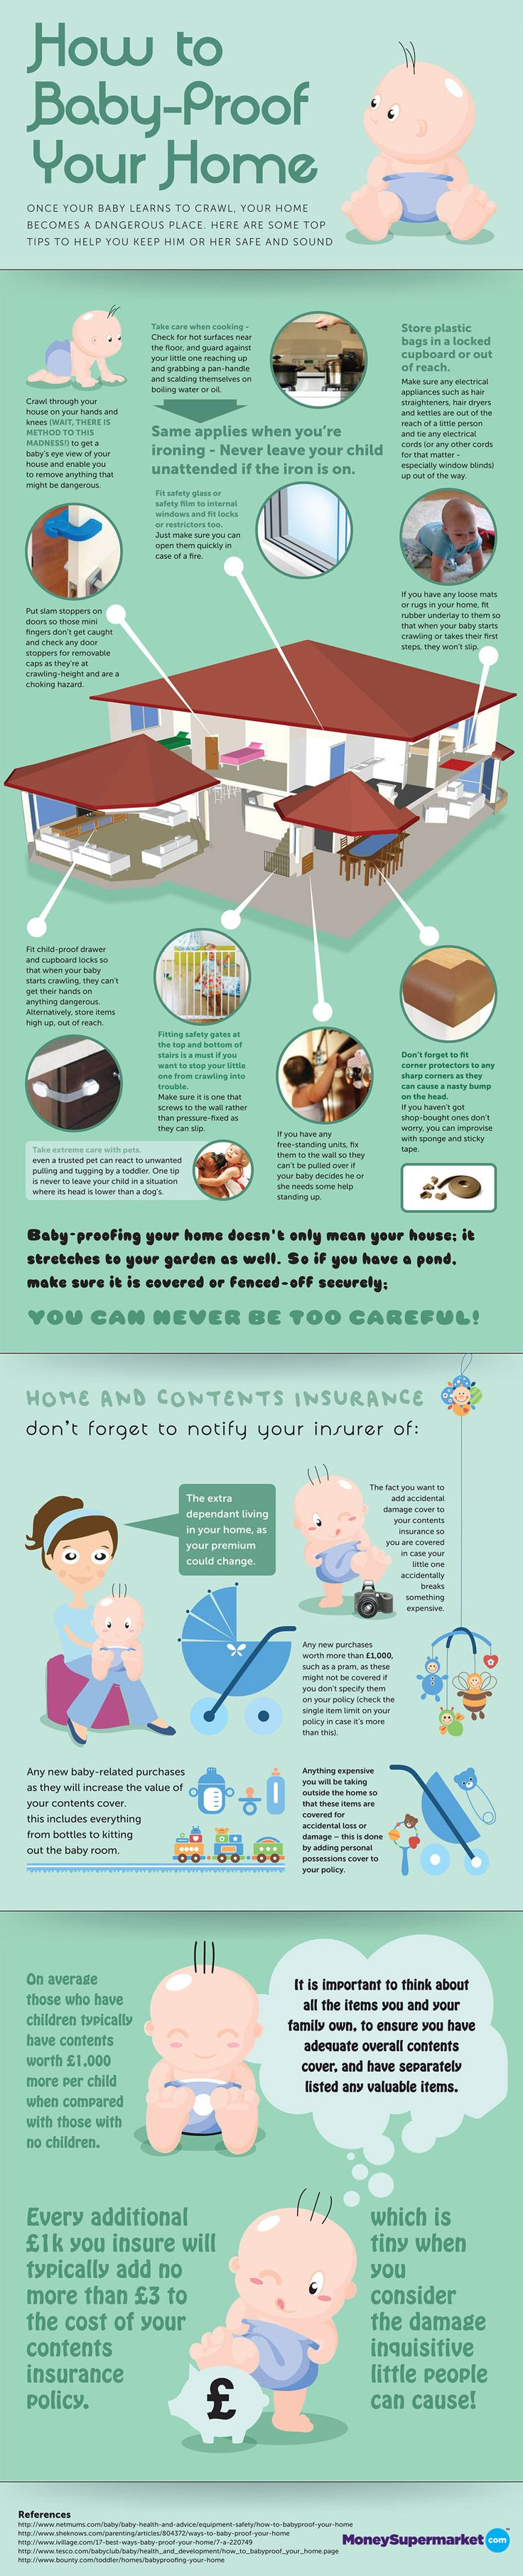 Baby Home Safety Tips : Once your baby starts toddling, you will be in need of better protection against the various lurking dangers from appliances, surfaces, furniture home units etc. that threaten your beloved ones safety. Here you will find some ideas for baby-proofing as well as some advice regarding the... > http://infographicsmania.com/baby-home-safety-tips/